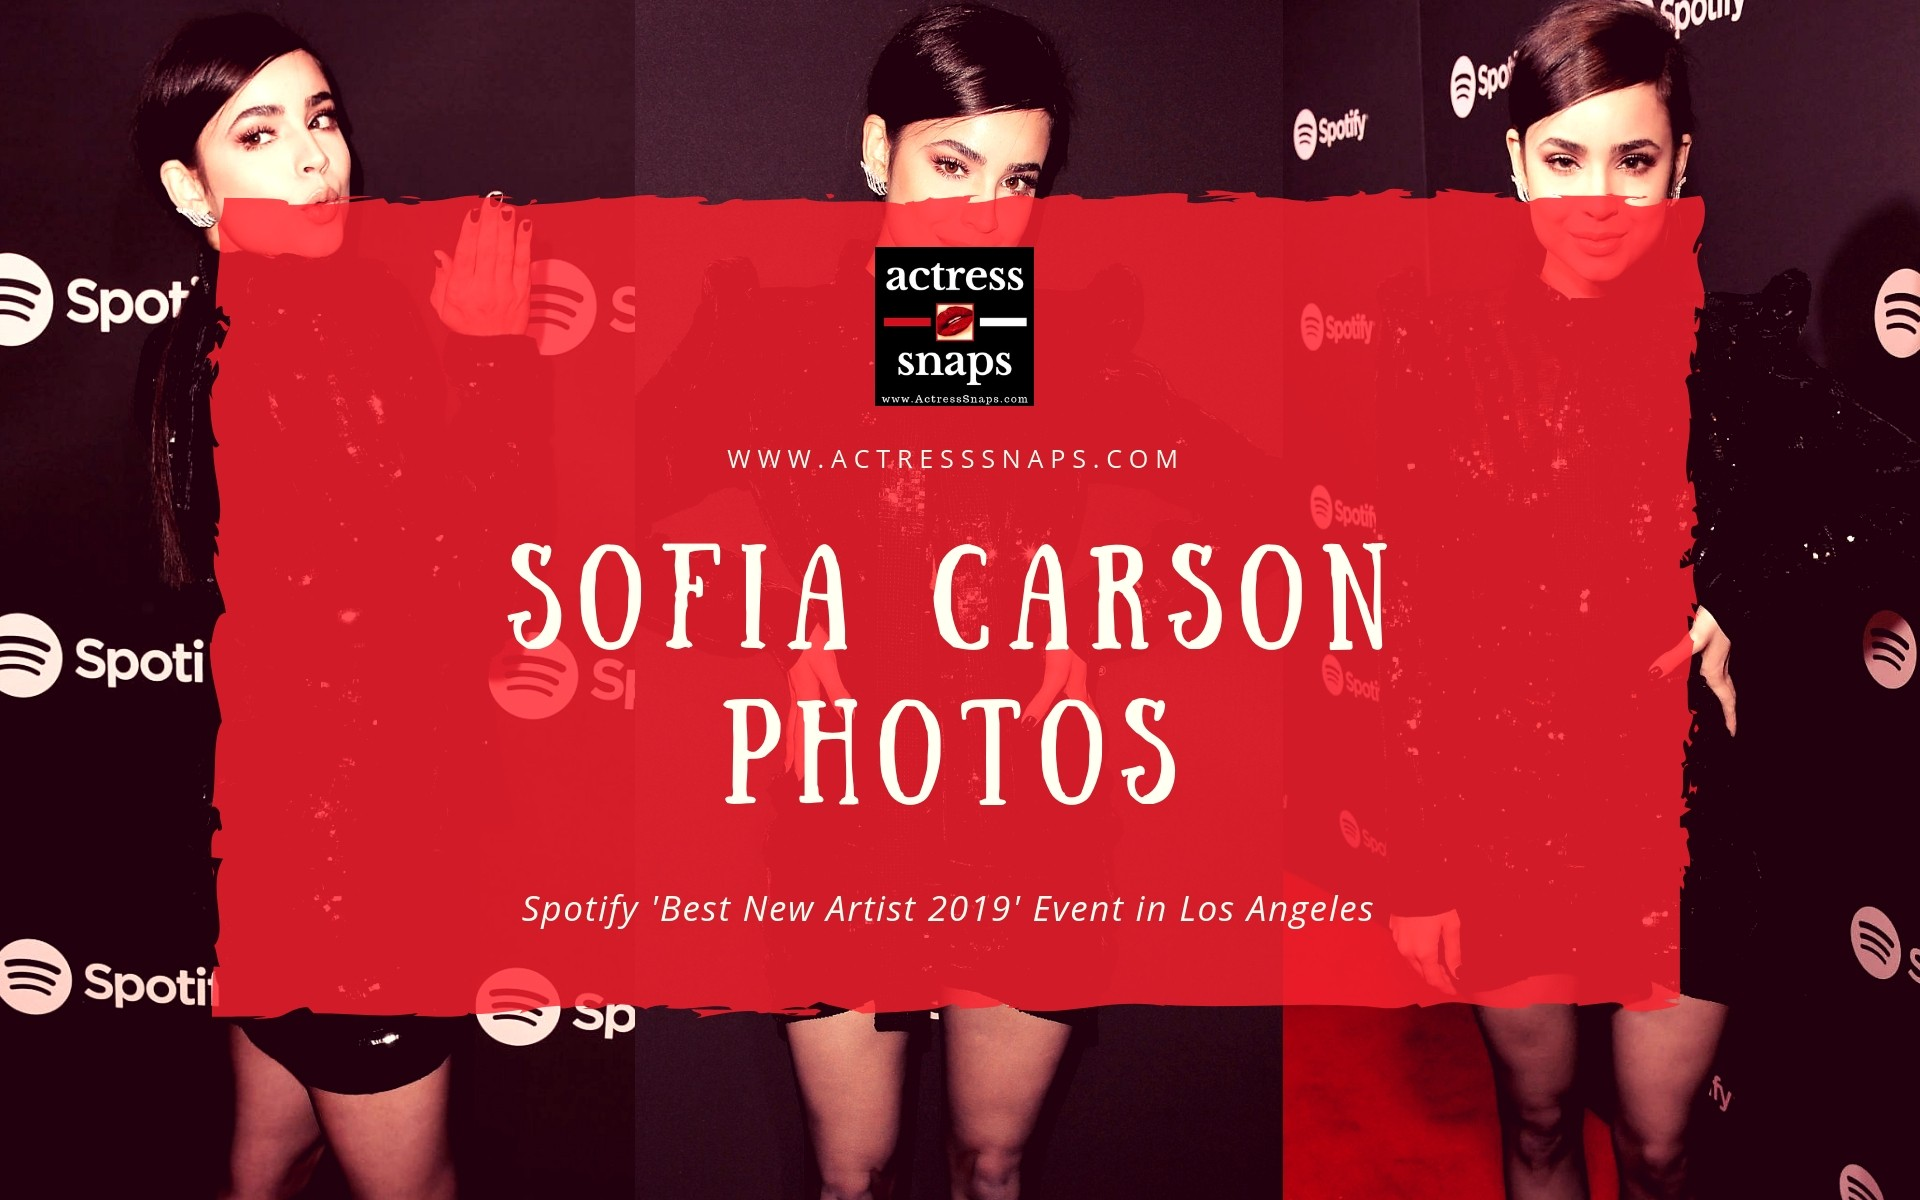 Sofia Carson - Spotify 'Best New Artist 2019' - Sexy Actress Pictures | Hot Actress Pictures - ActressSnaps.com